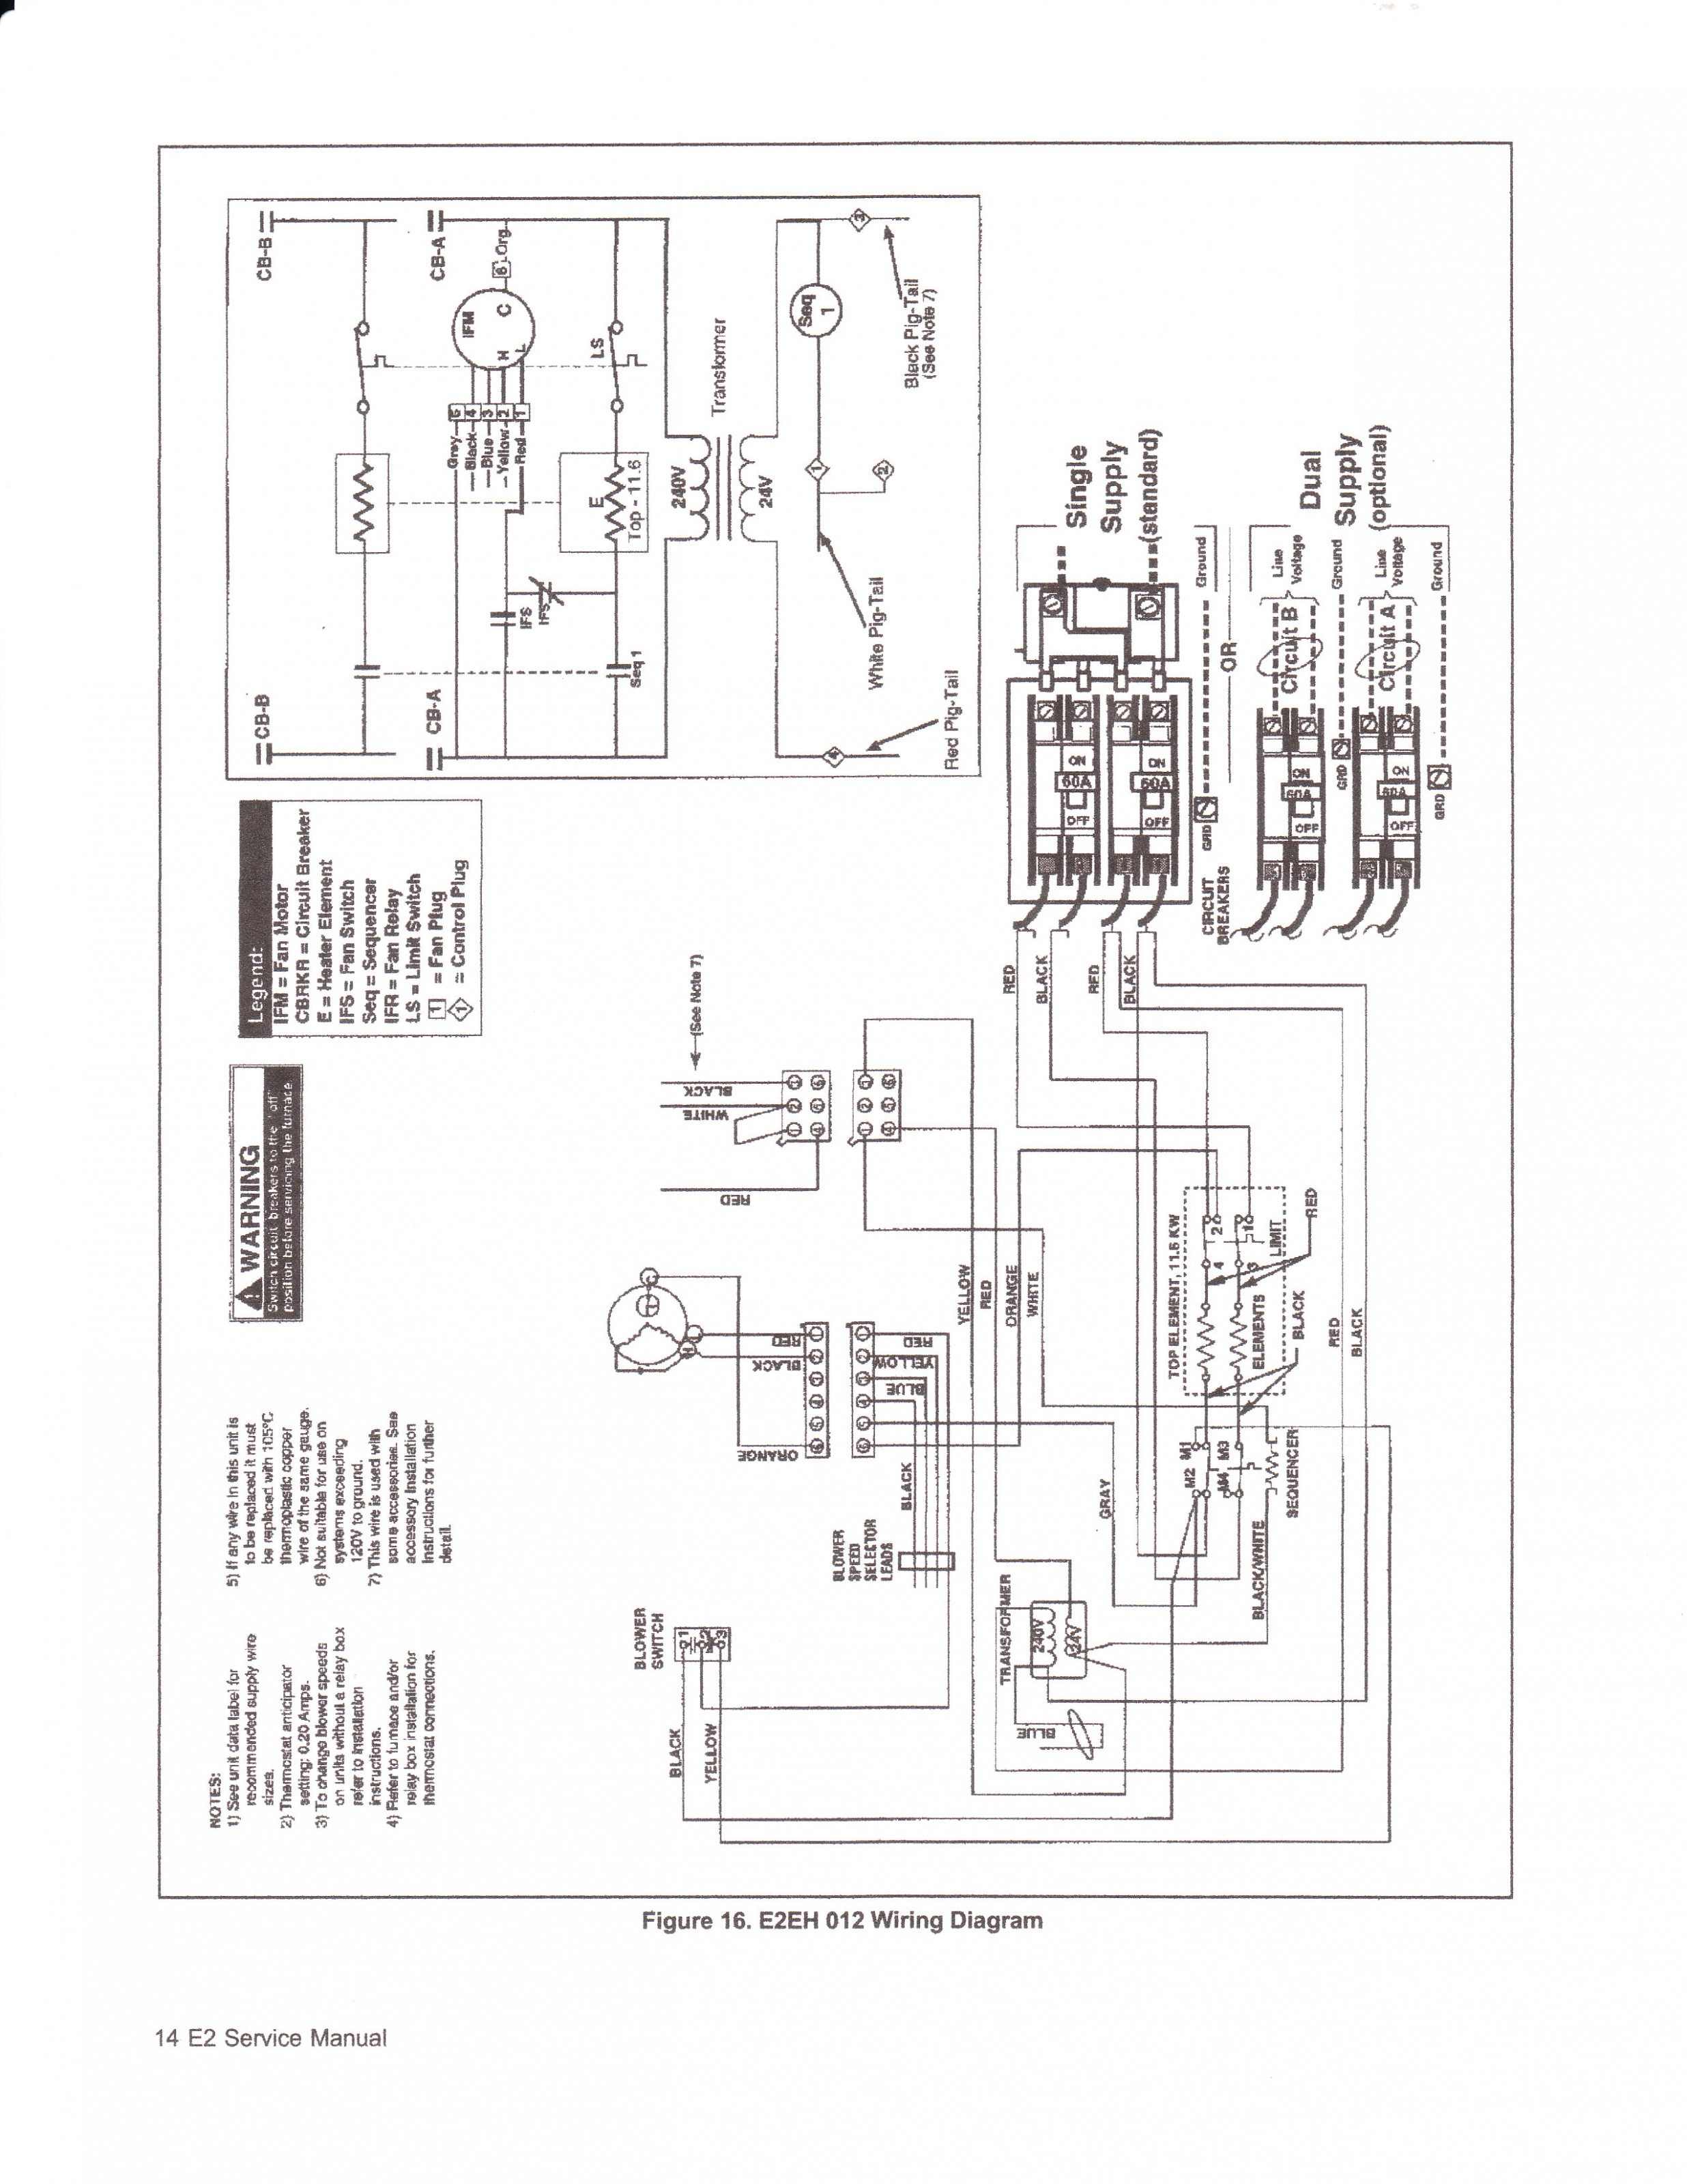 Wiring Diagram Coleman Mobile Home Electric Furnace Wiring